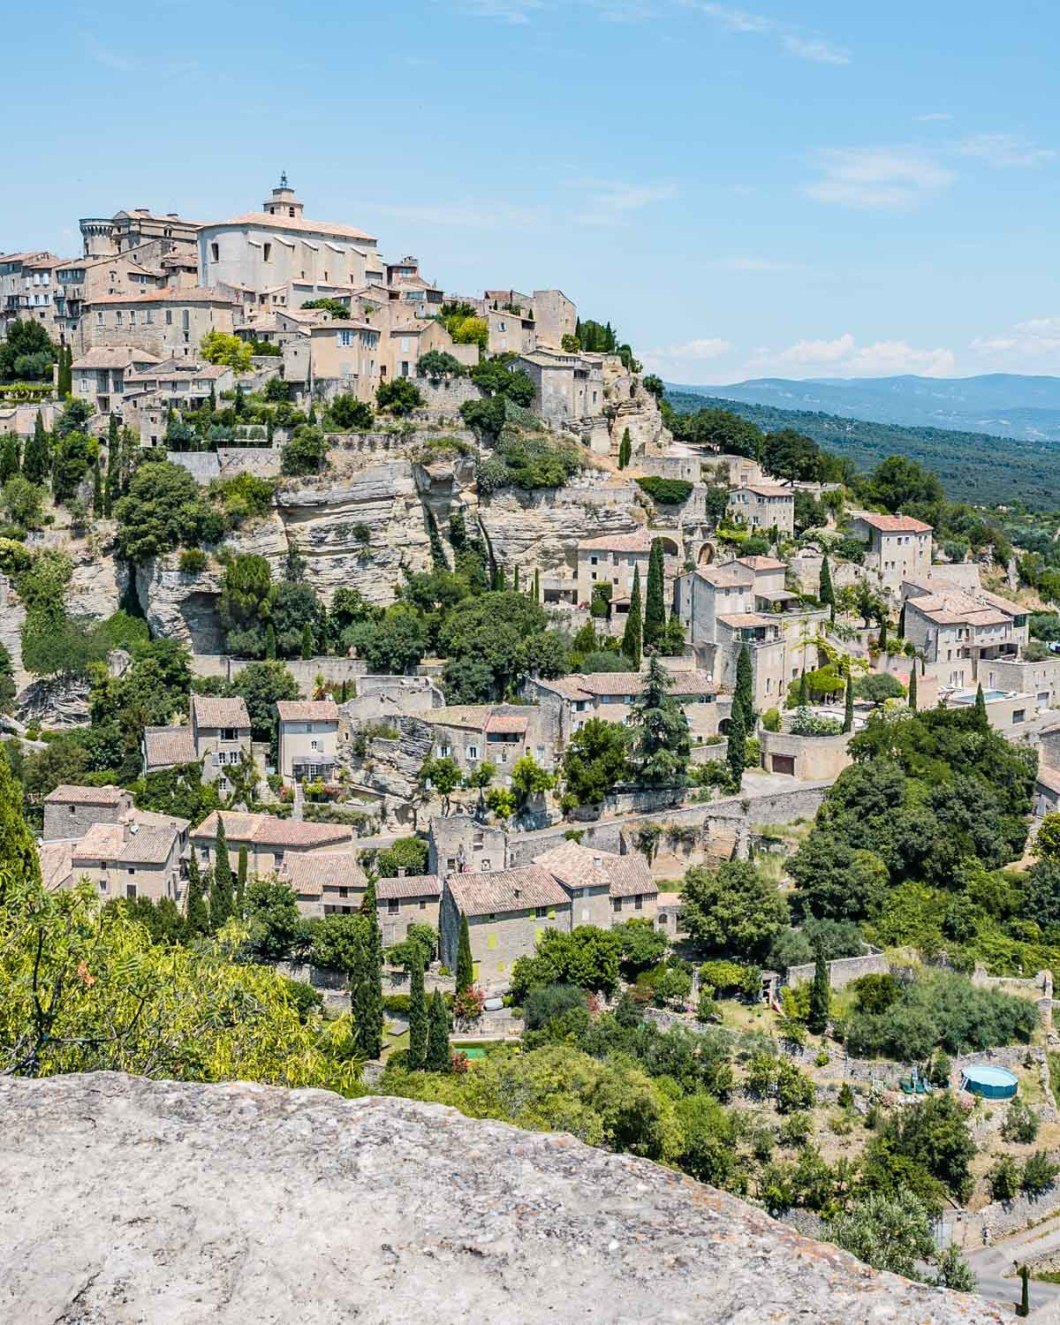 View of Gordes in Provence